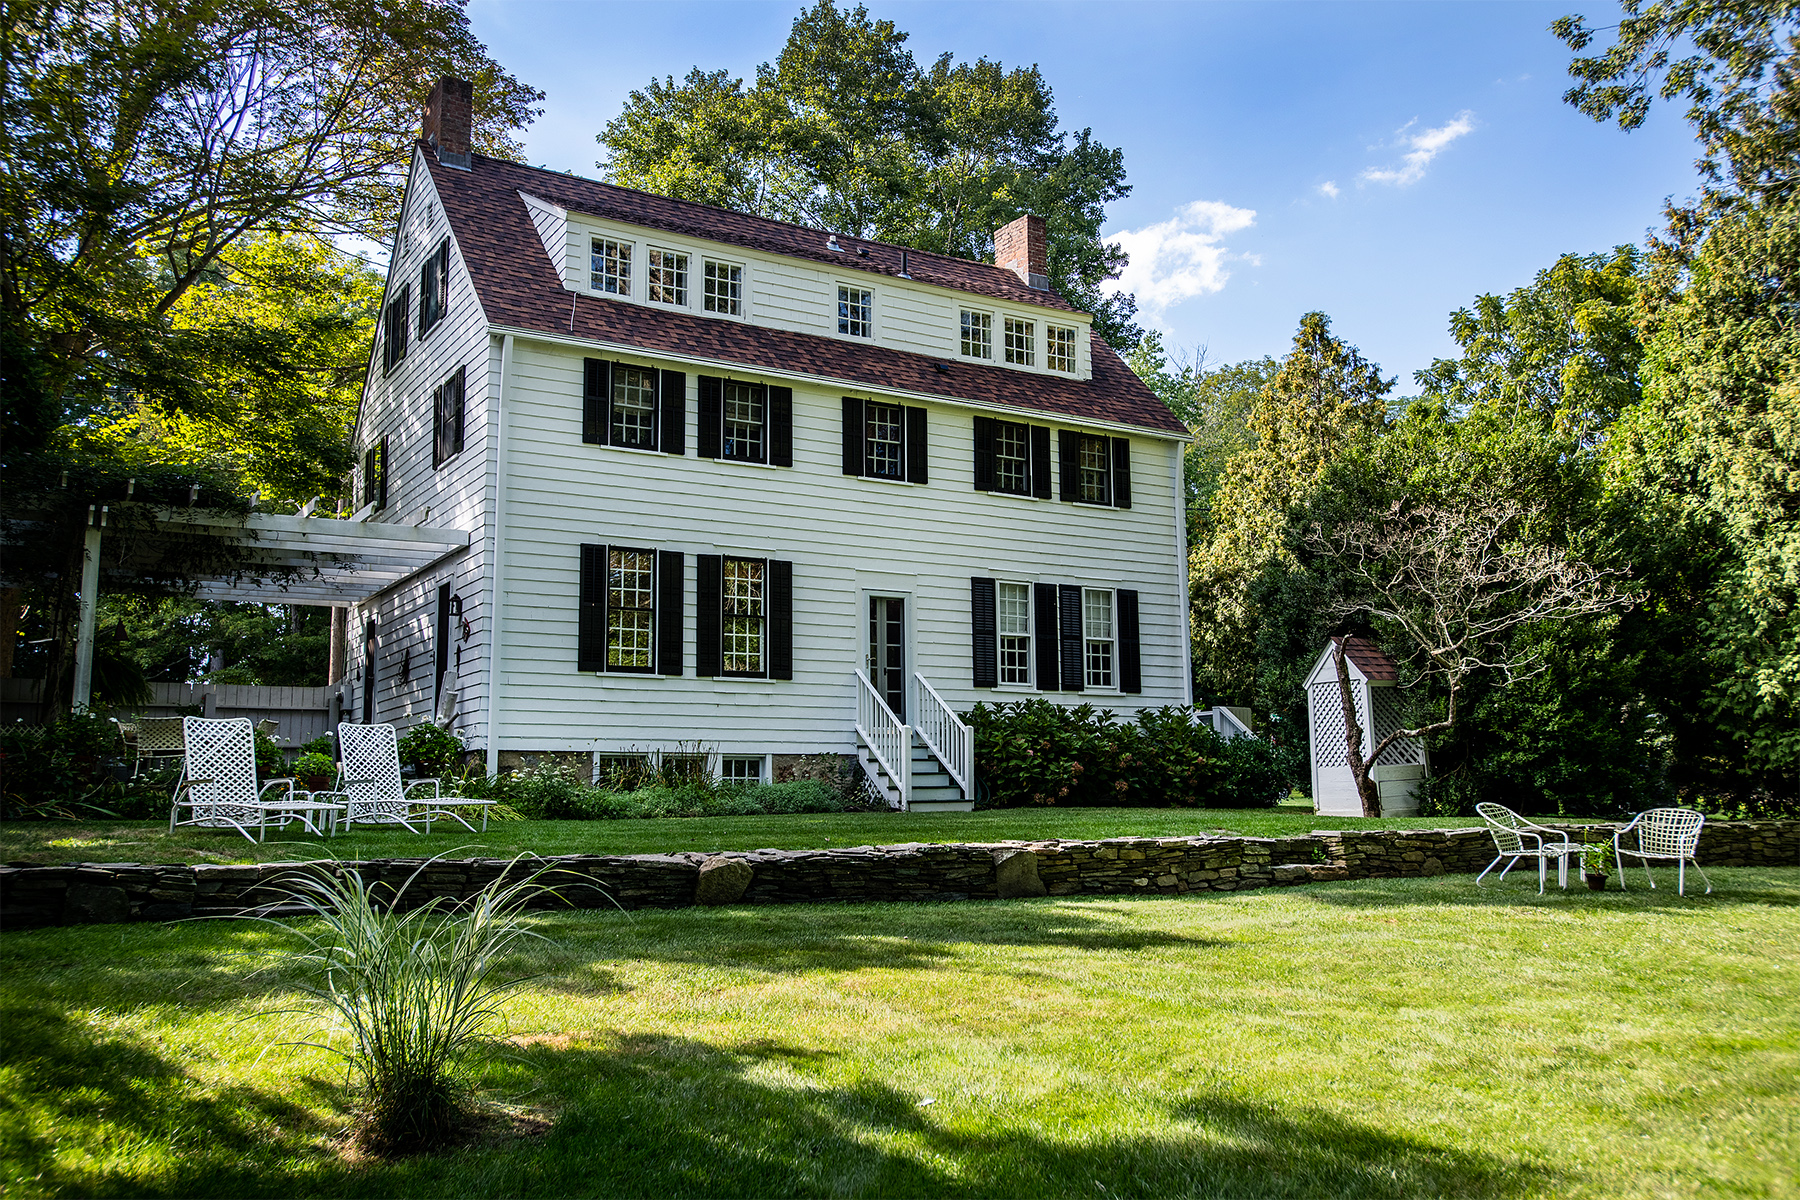 Single Family Homes for Sale at Historical Living with Modern Flair! 95 Lyme Street, Old Lyme, Connecticut 06371 United States